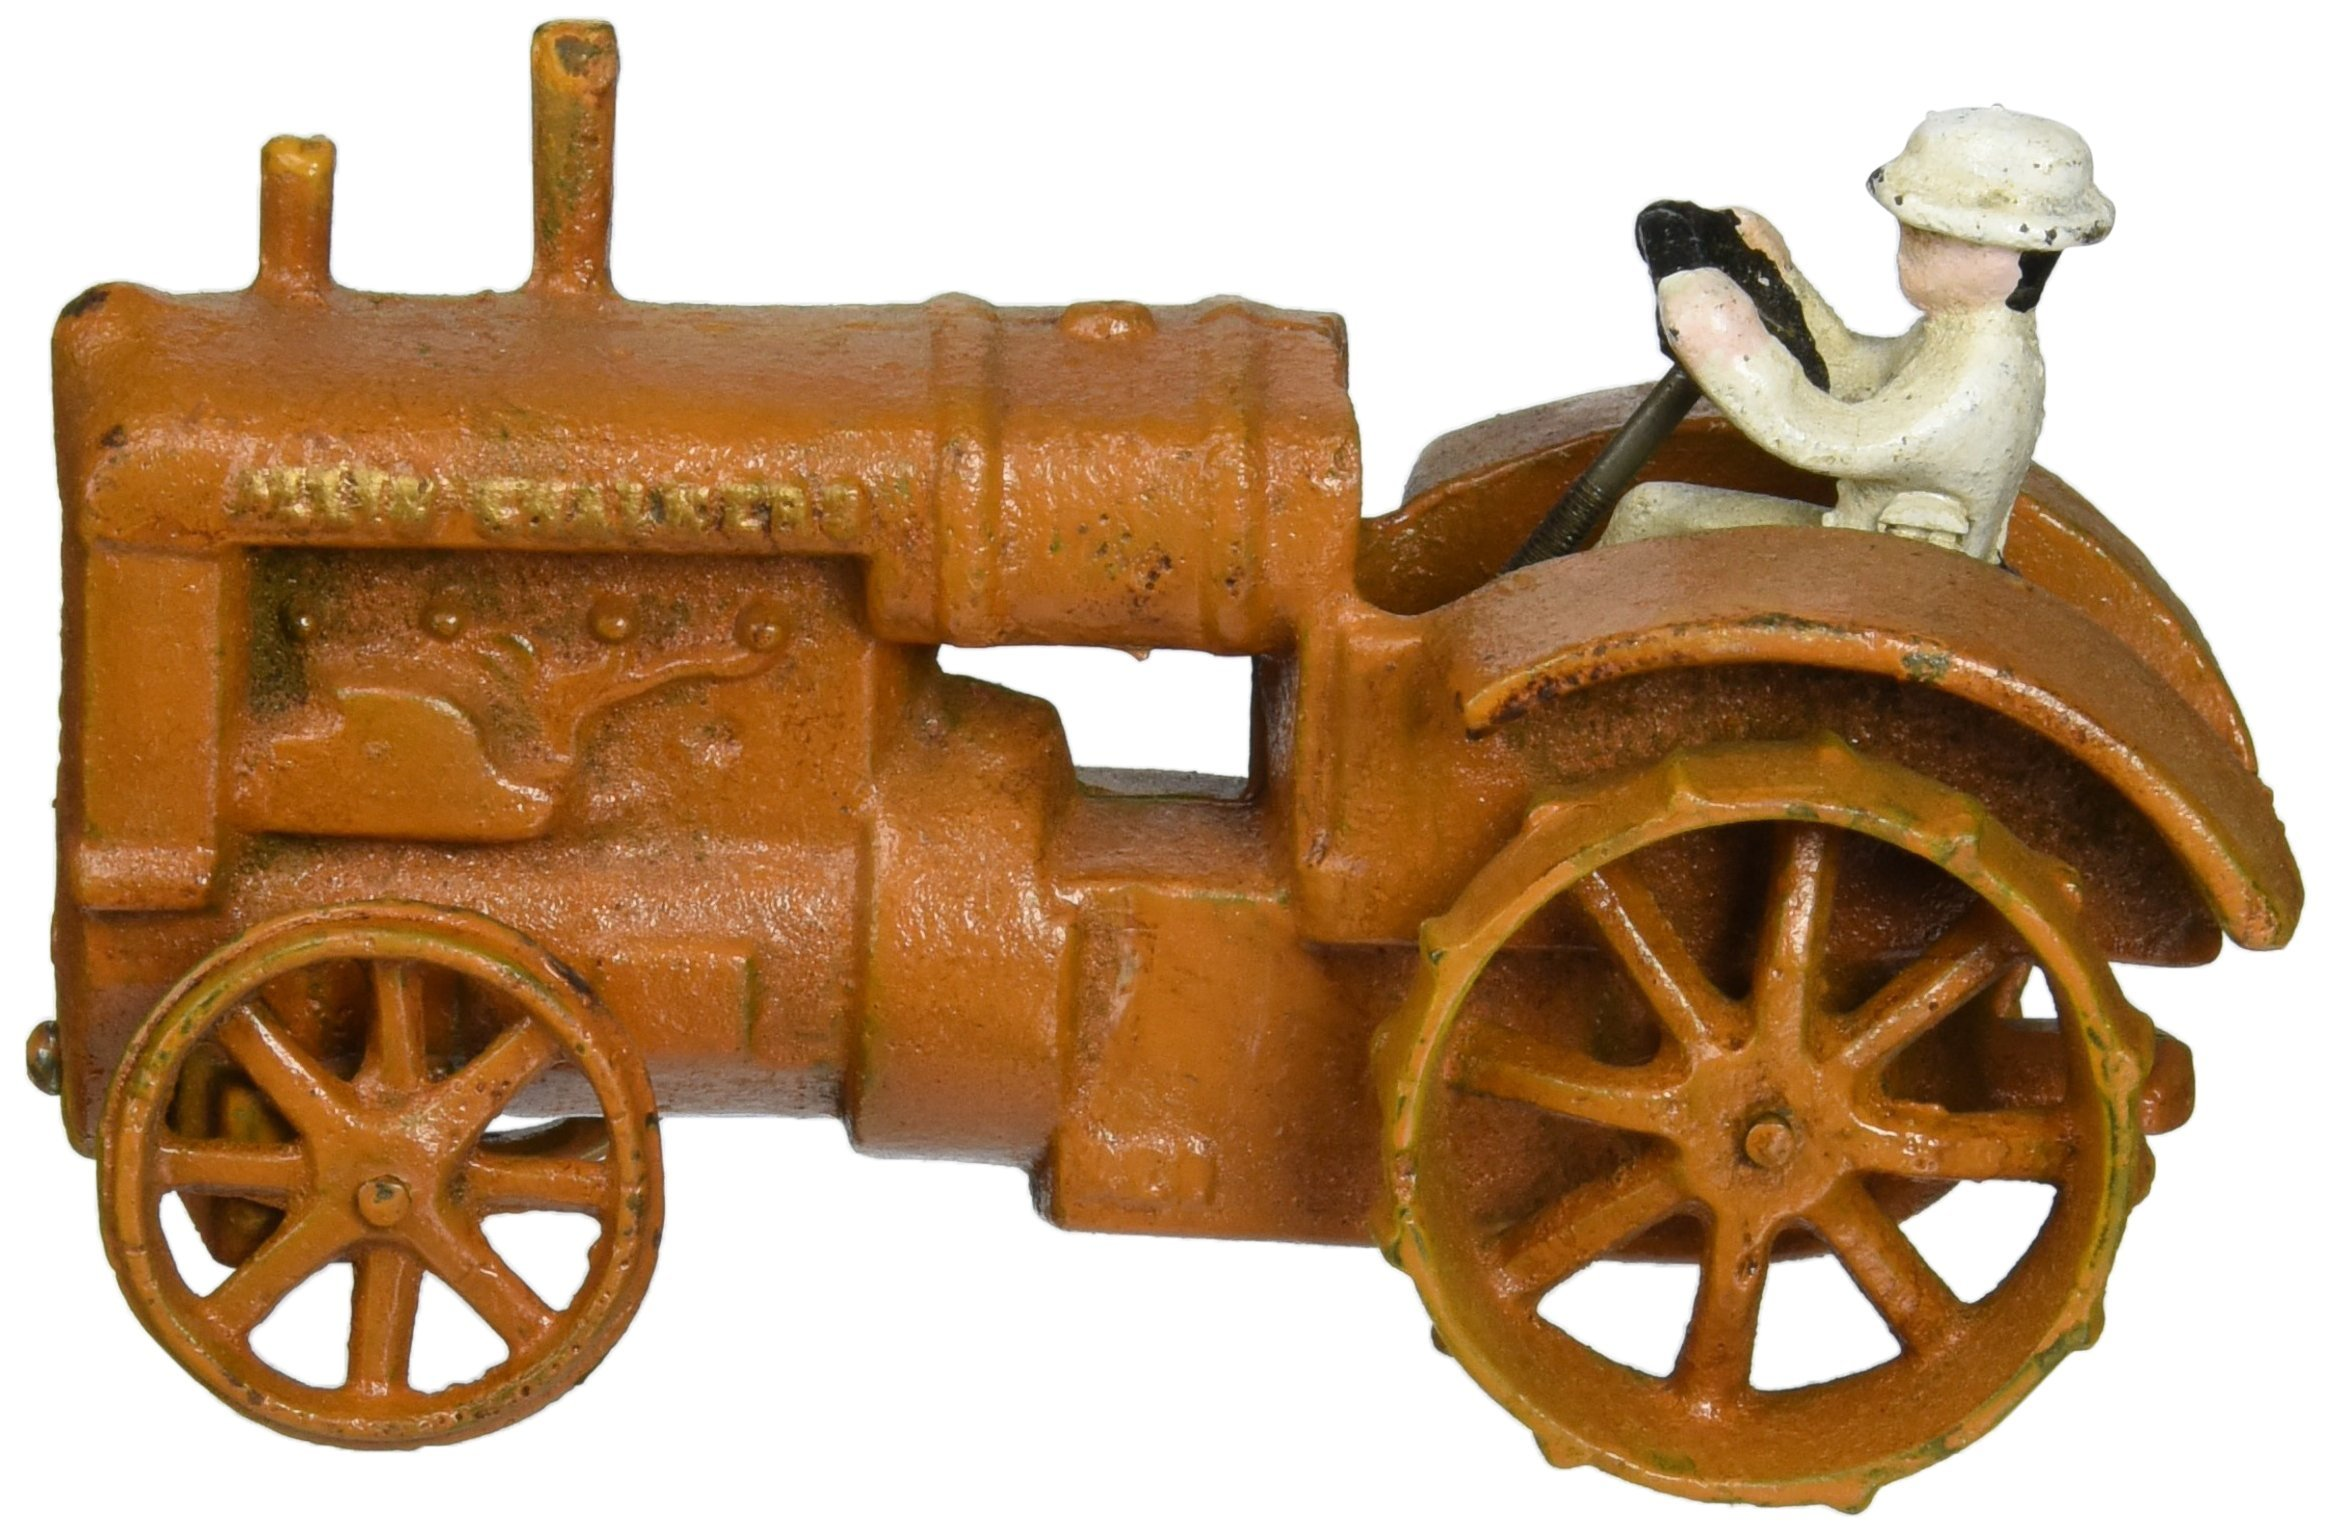 Design Toscano Allis Chalmers Replica Cast Iron Farm Toy Tractor, Multicolored by Design Toscano